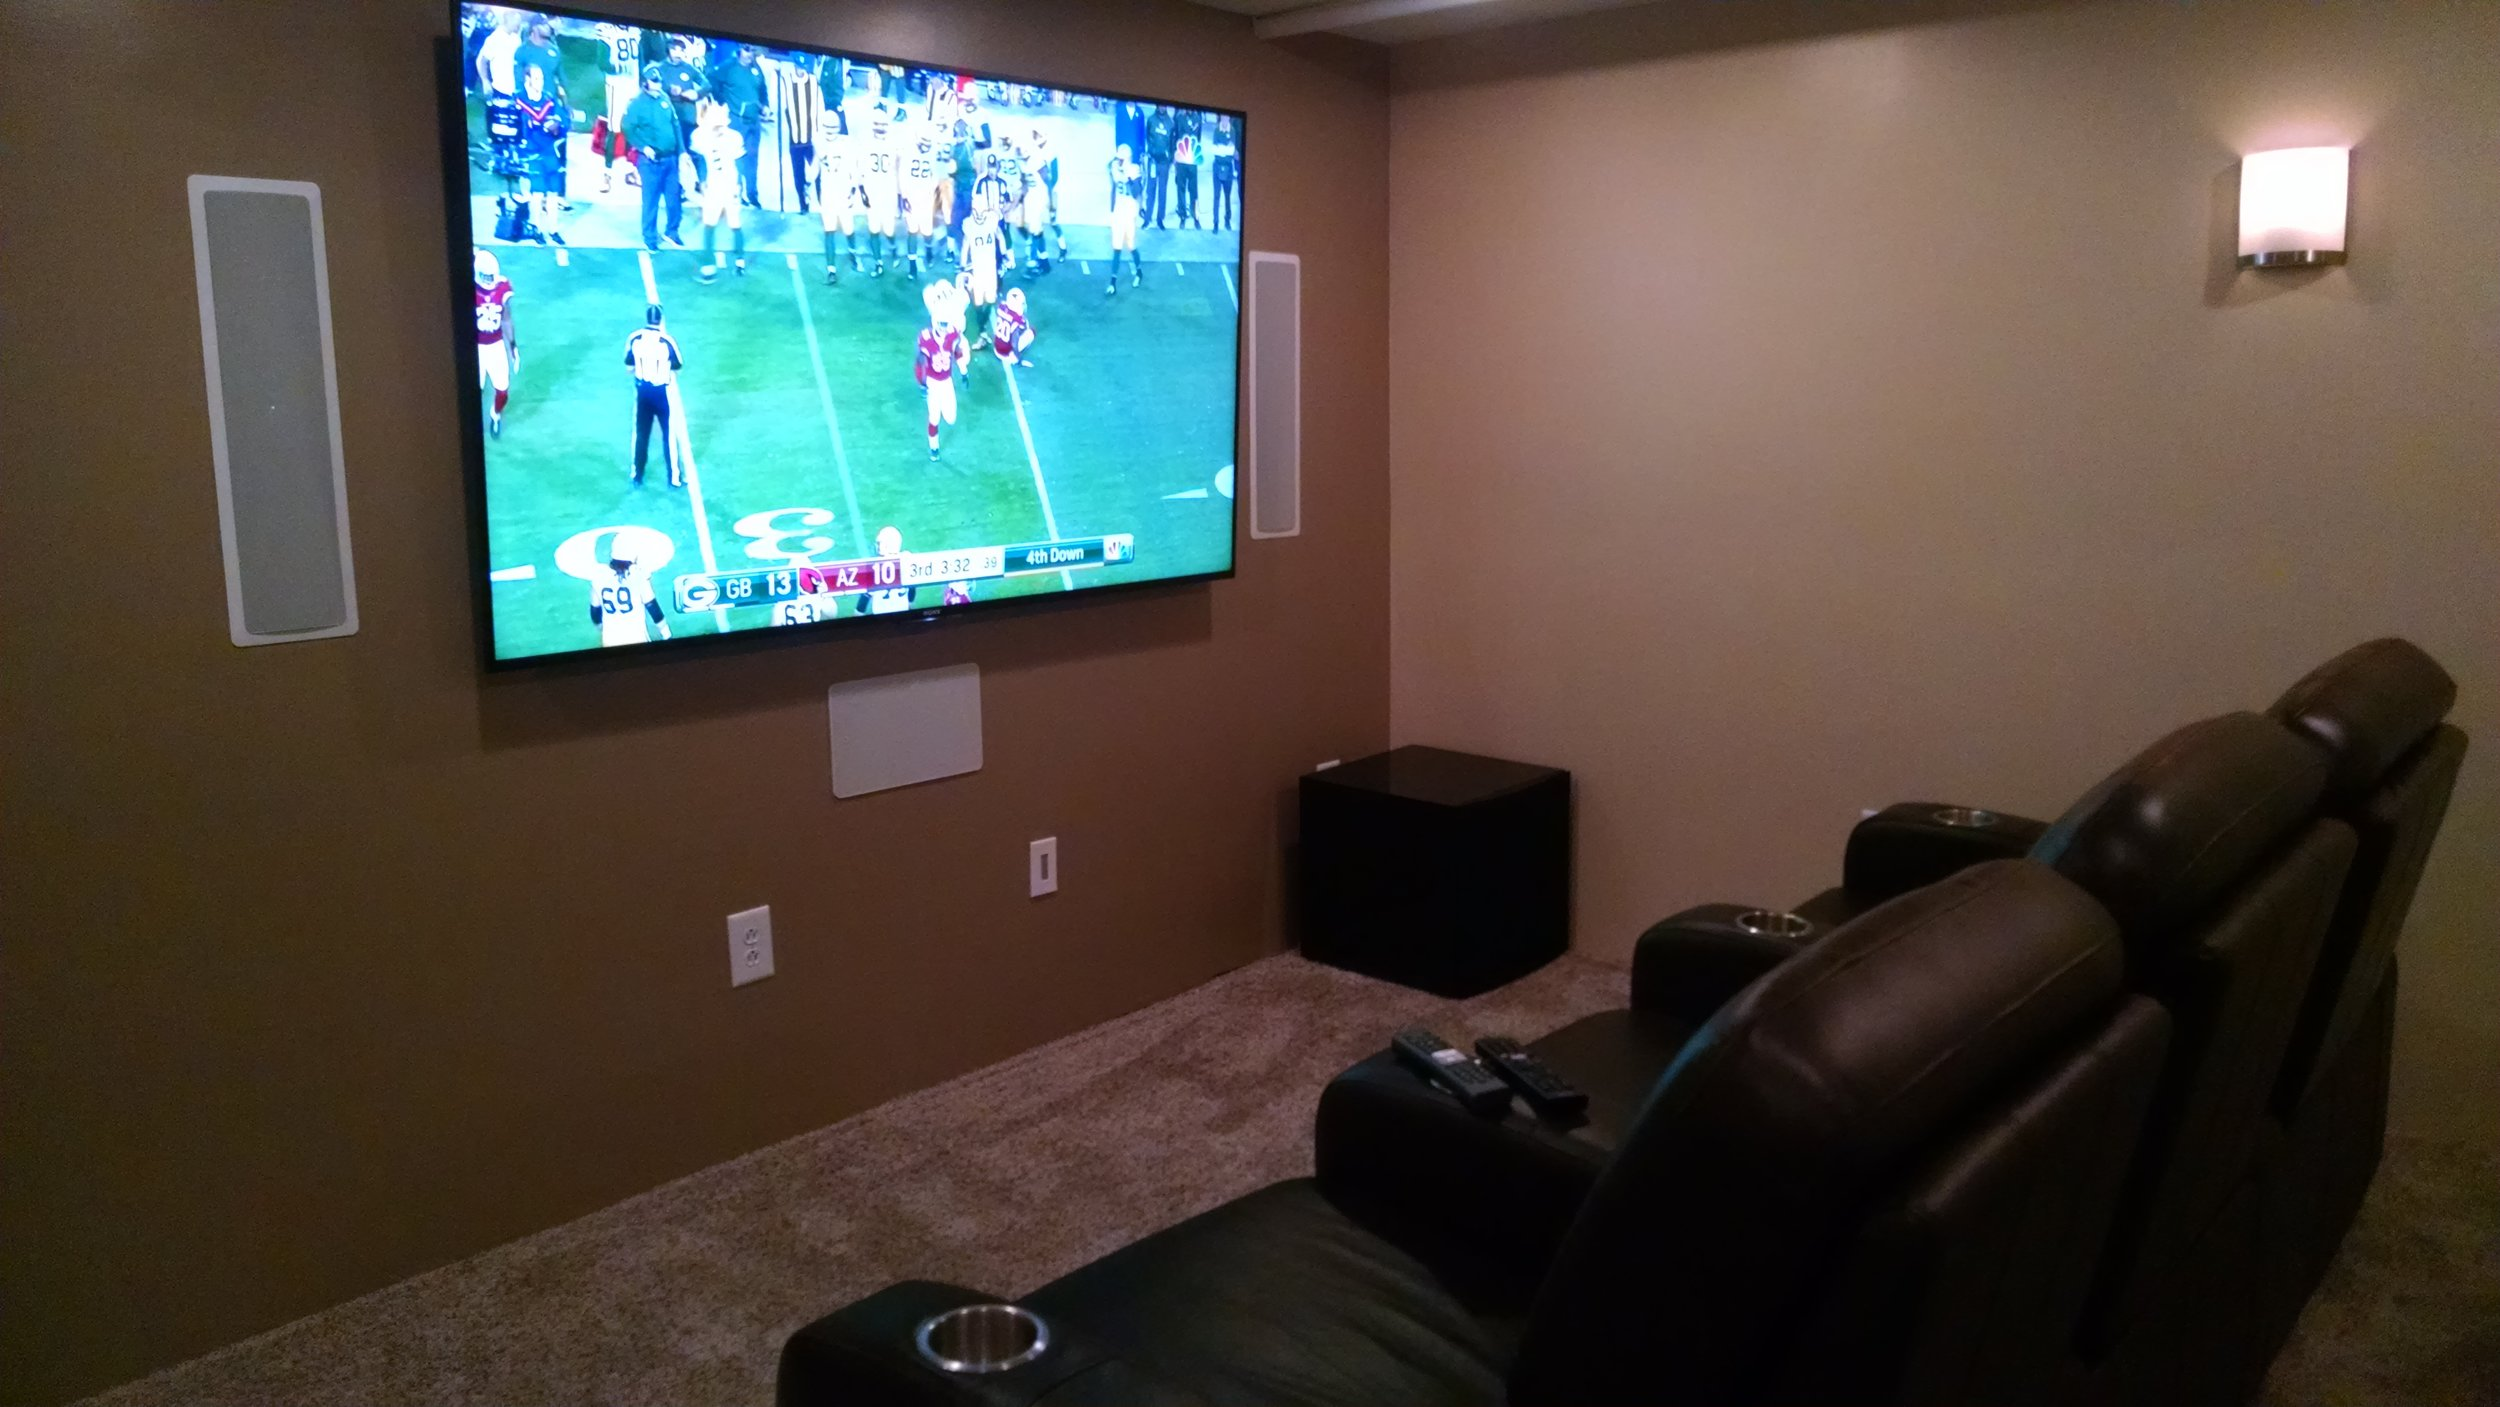 Cinemagic - Pittsburgh's Home Entertainment Installation Specialists. Indoor, Outdoor, TV, Audio, Home Automation- we do it all! Give your Entertainment Space the upgrade it deserves. Click on any of the images above to learn more about our products and services. Then call Marty at 412-716-5500 to schedule your FREE in home consultation.